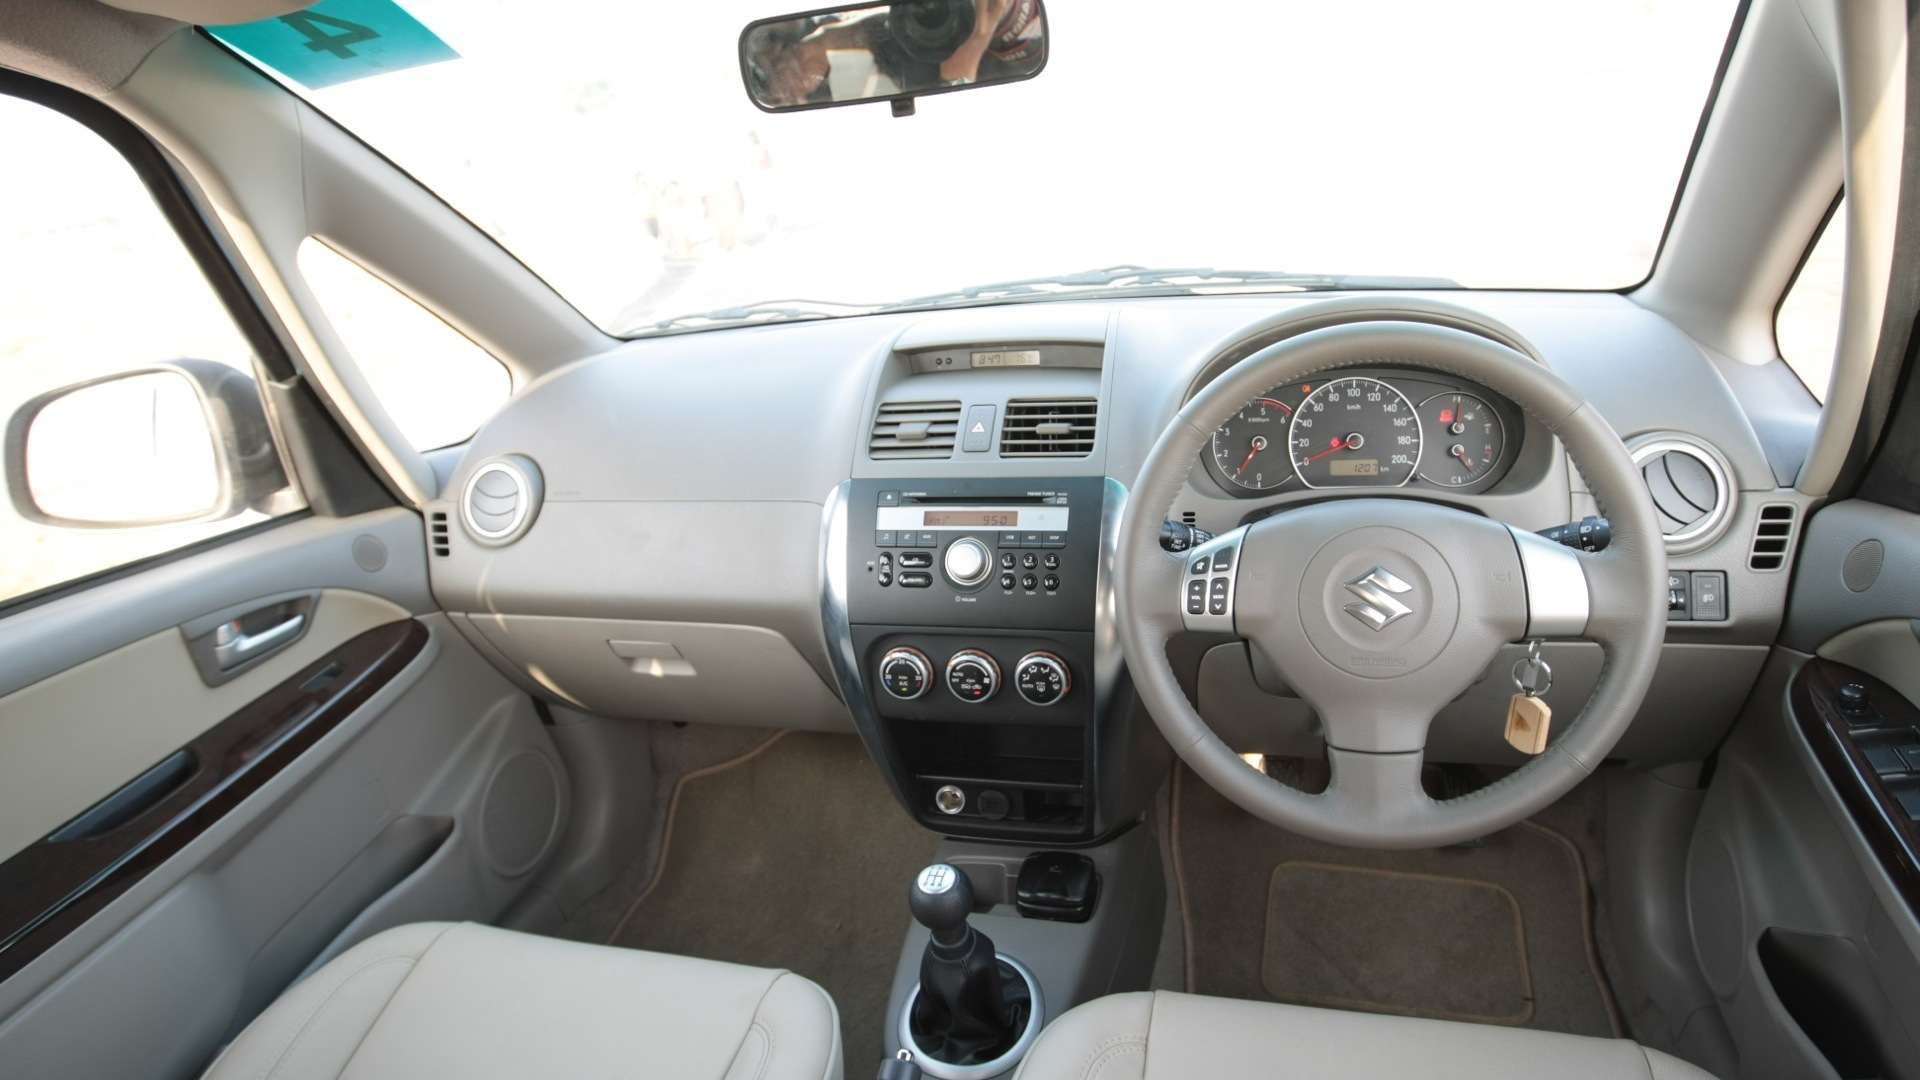 Maruti-suzuki-sx4-2013-zdi-interior Car Photos